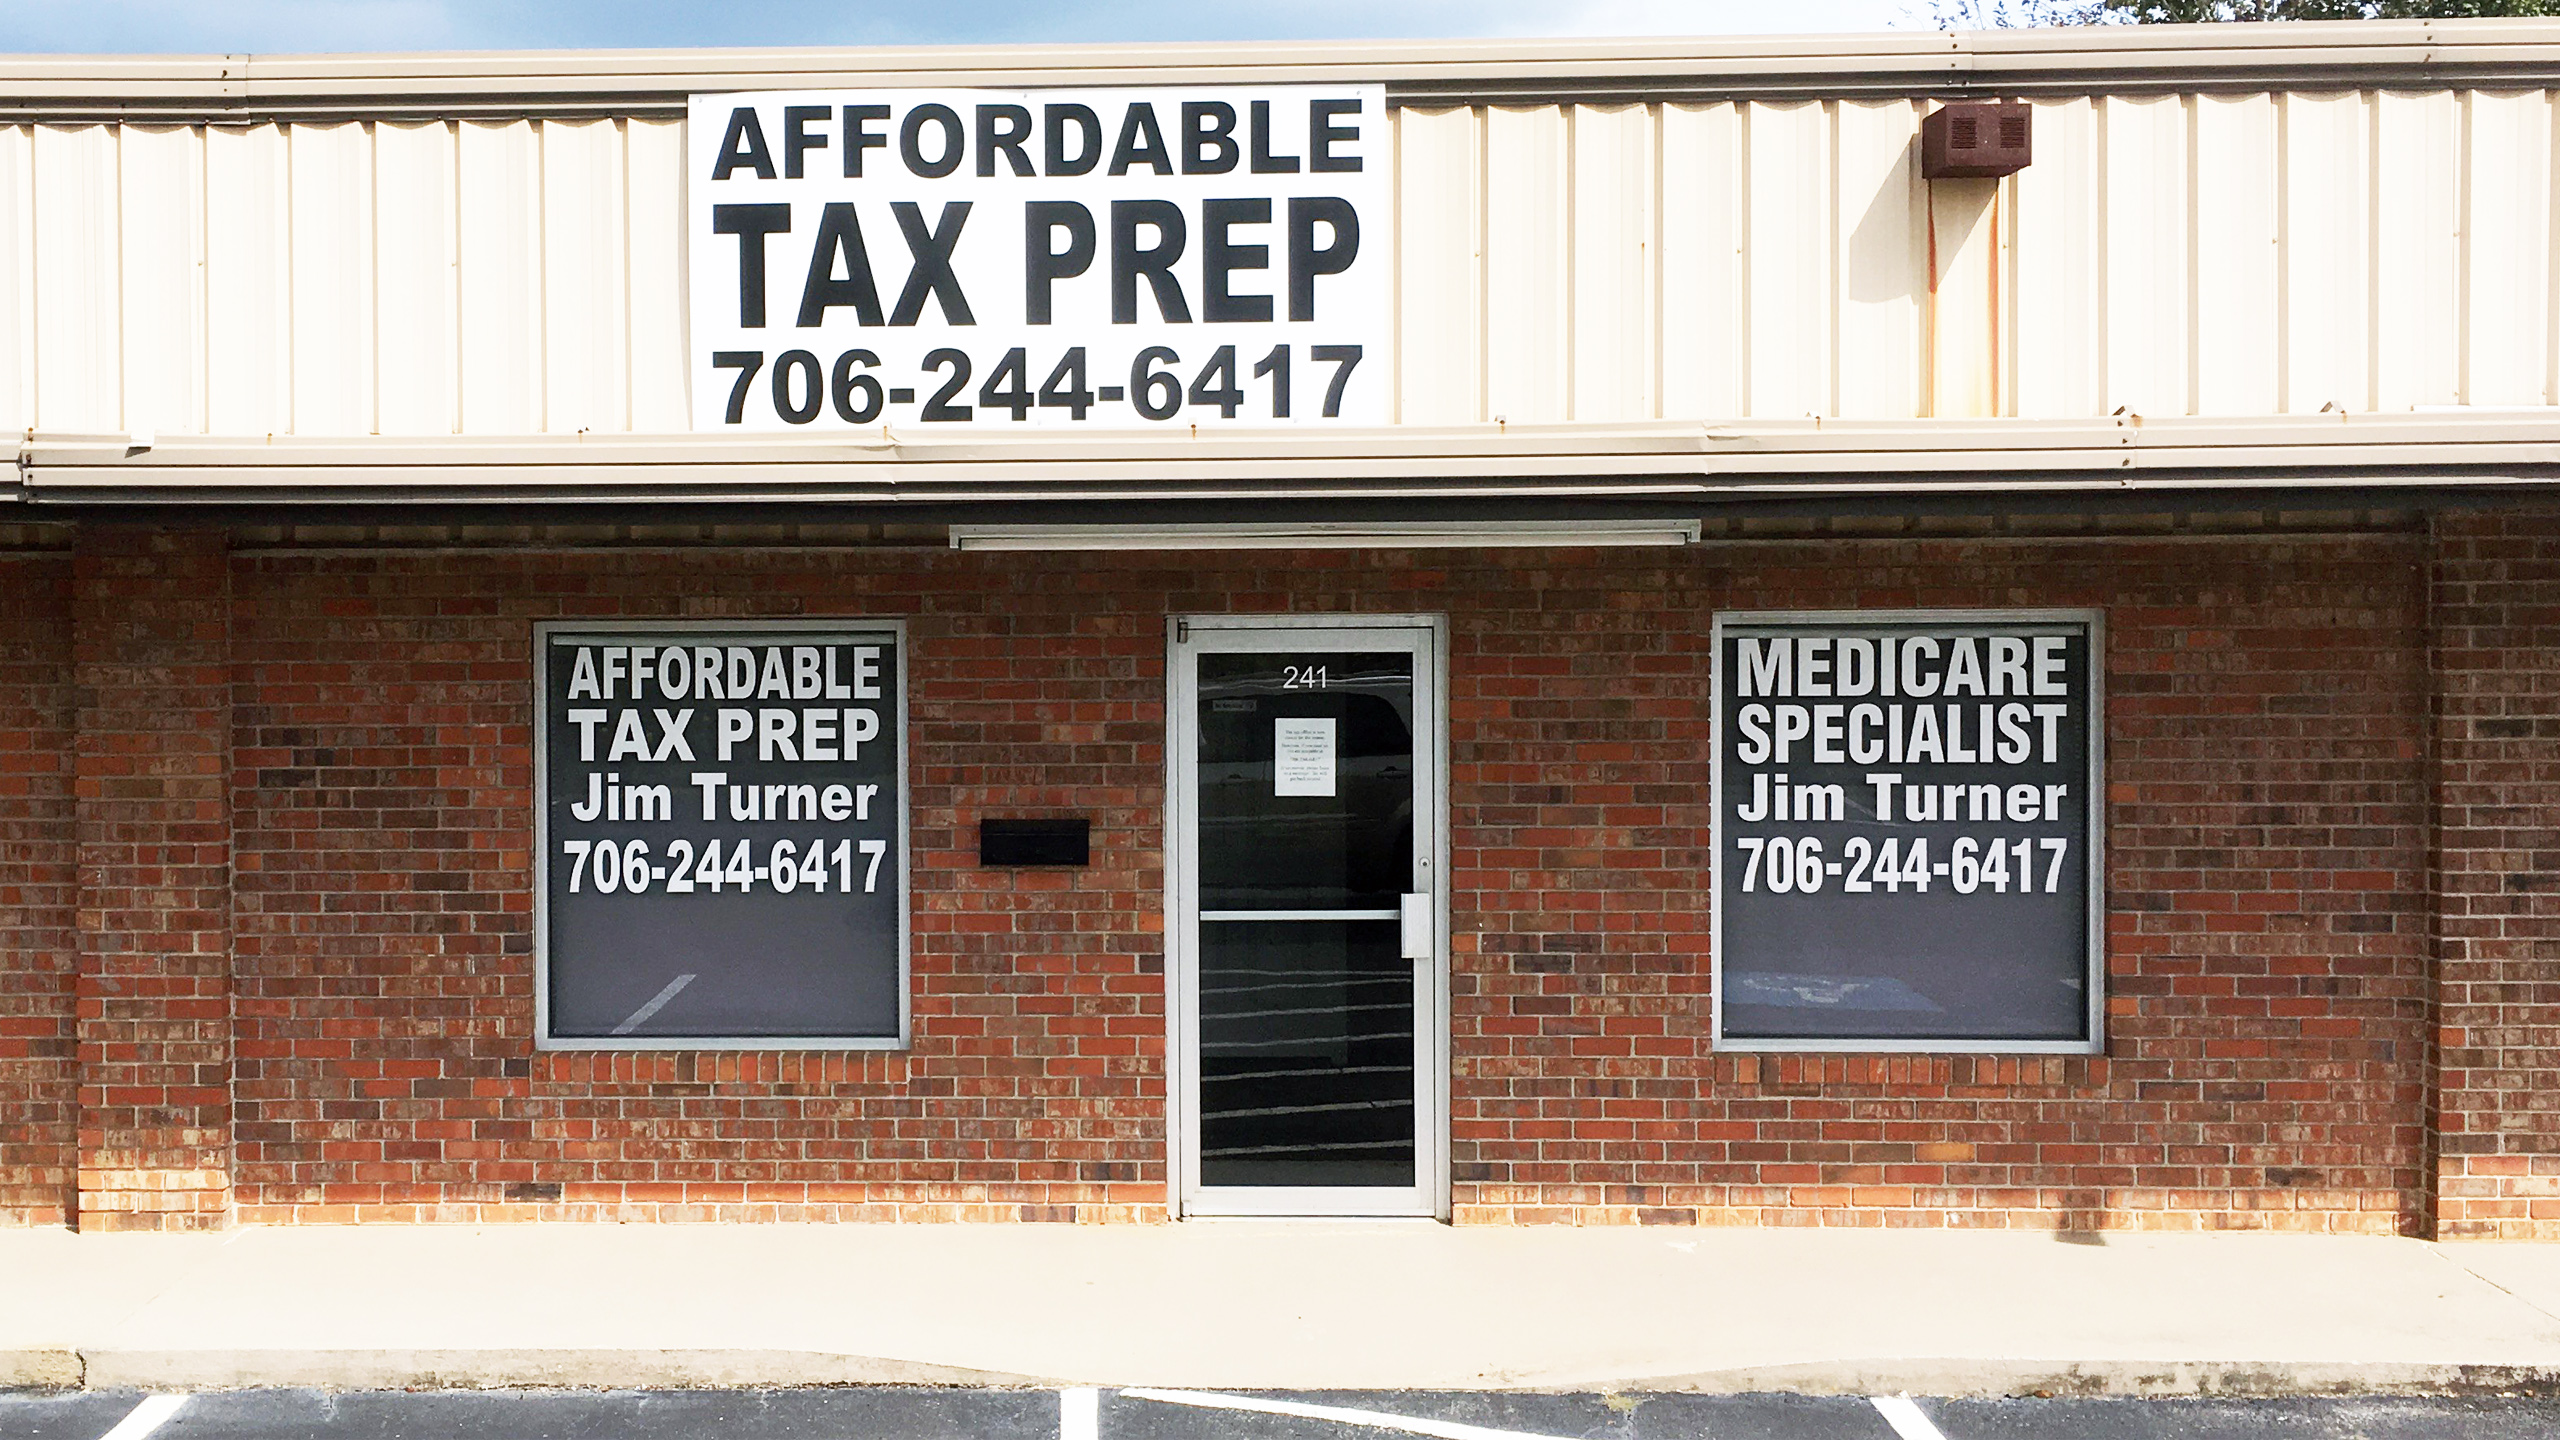 Affordable Tax Office in Toccoa, Georgia